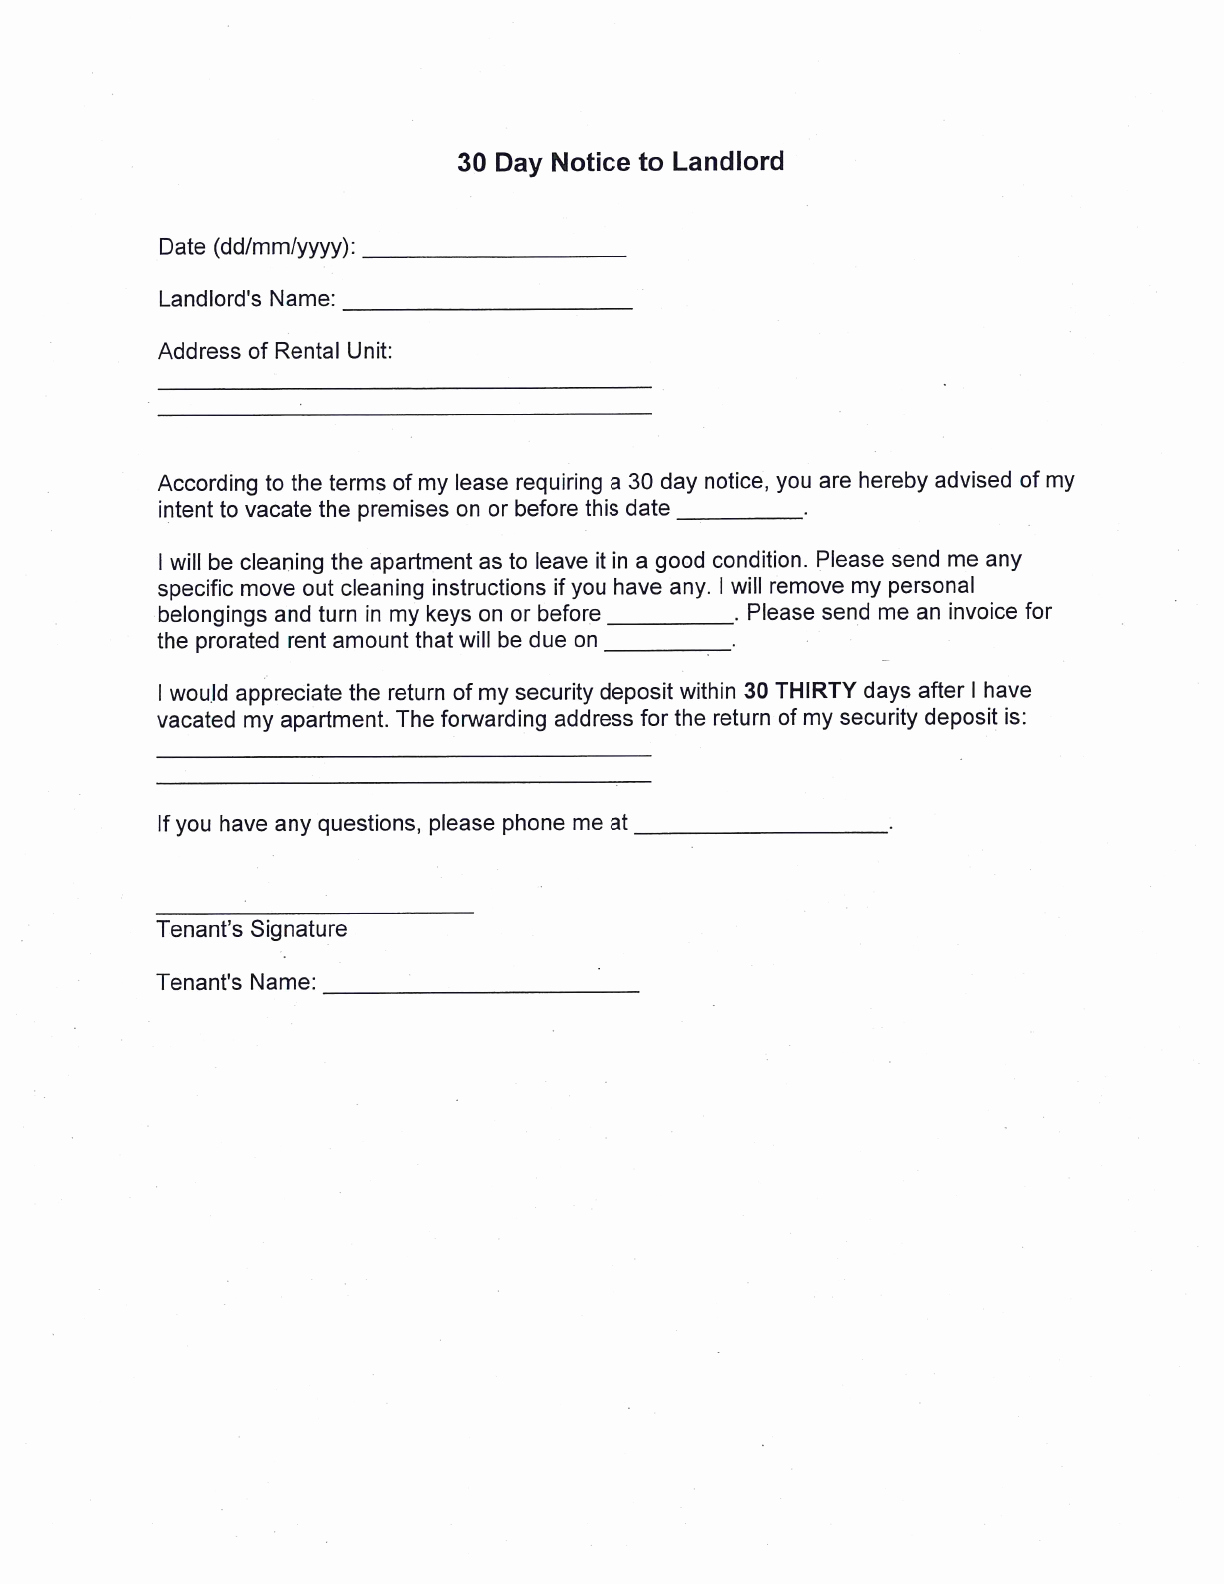 30 Day Notice Moving Out Letter Best Of Free 30 Day Notice to Landlord Pdf 266kb